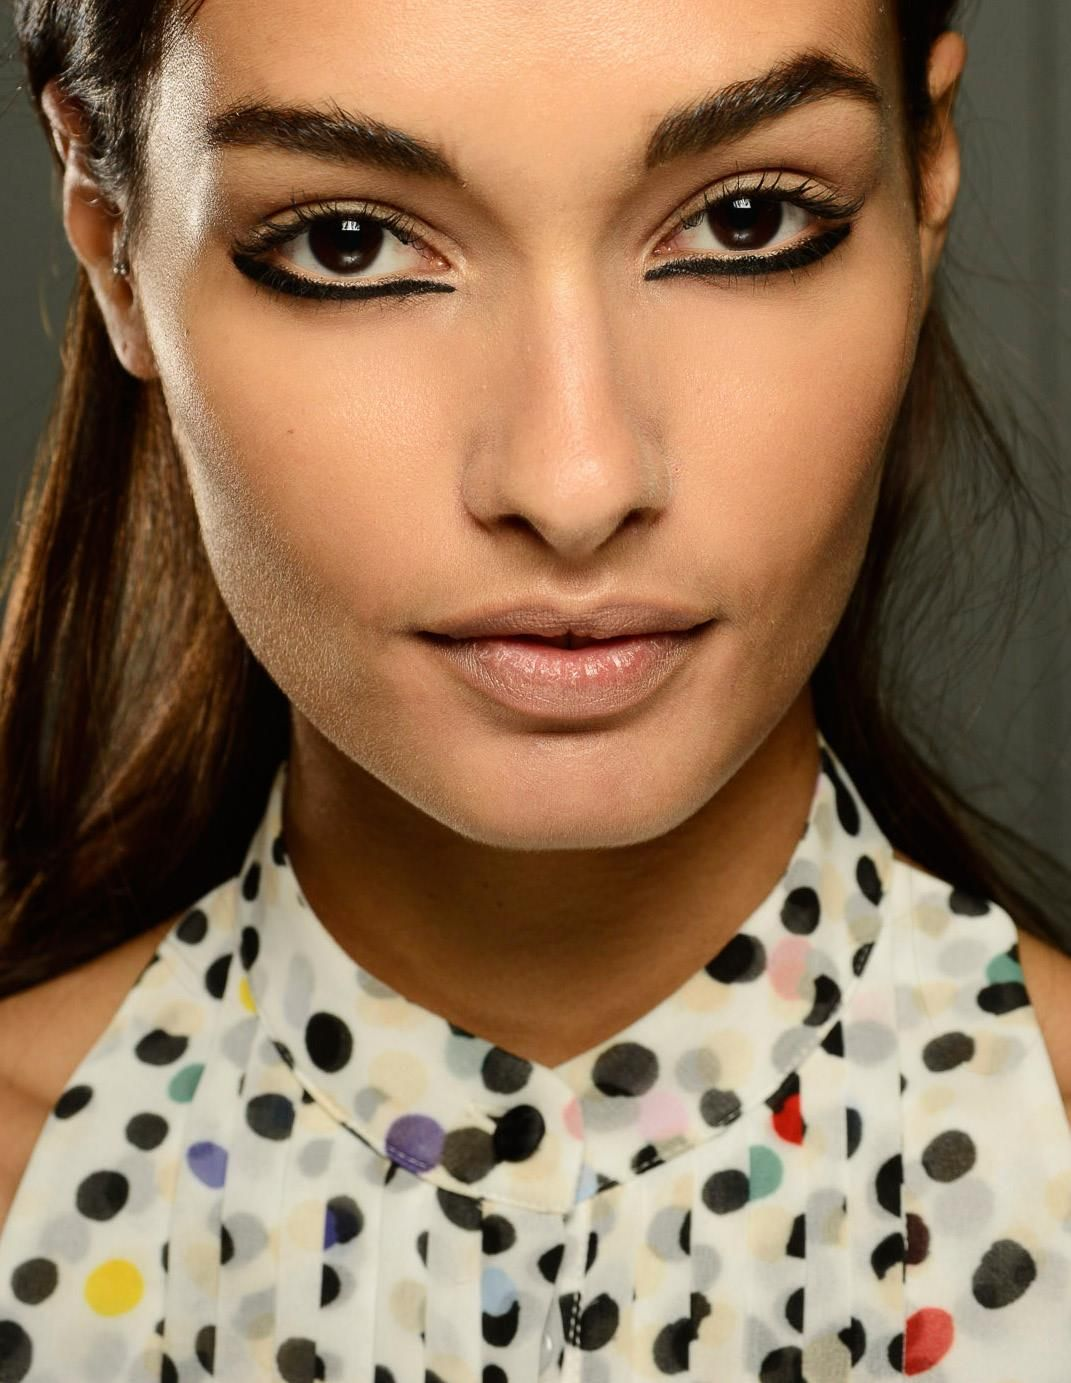 Just Cavalli Spring Summer 2015 Beauty by MAC. Under the